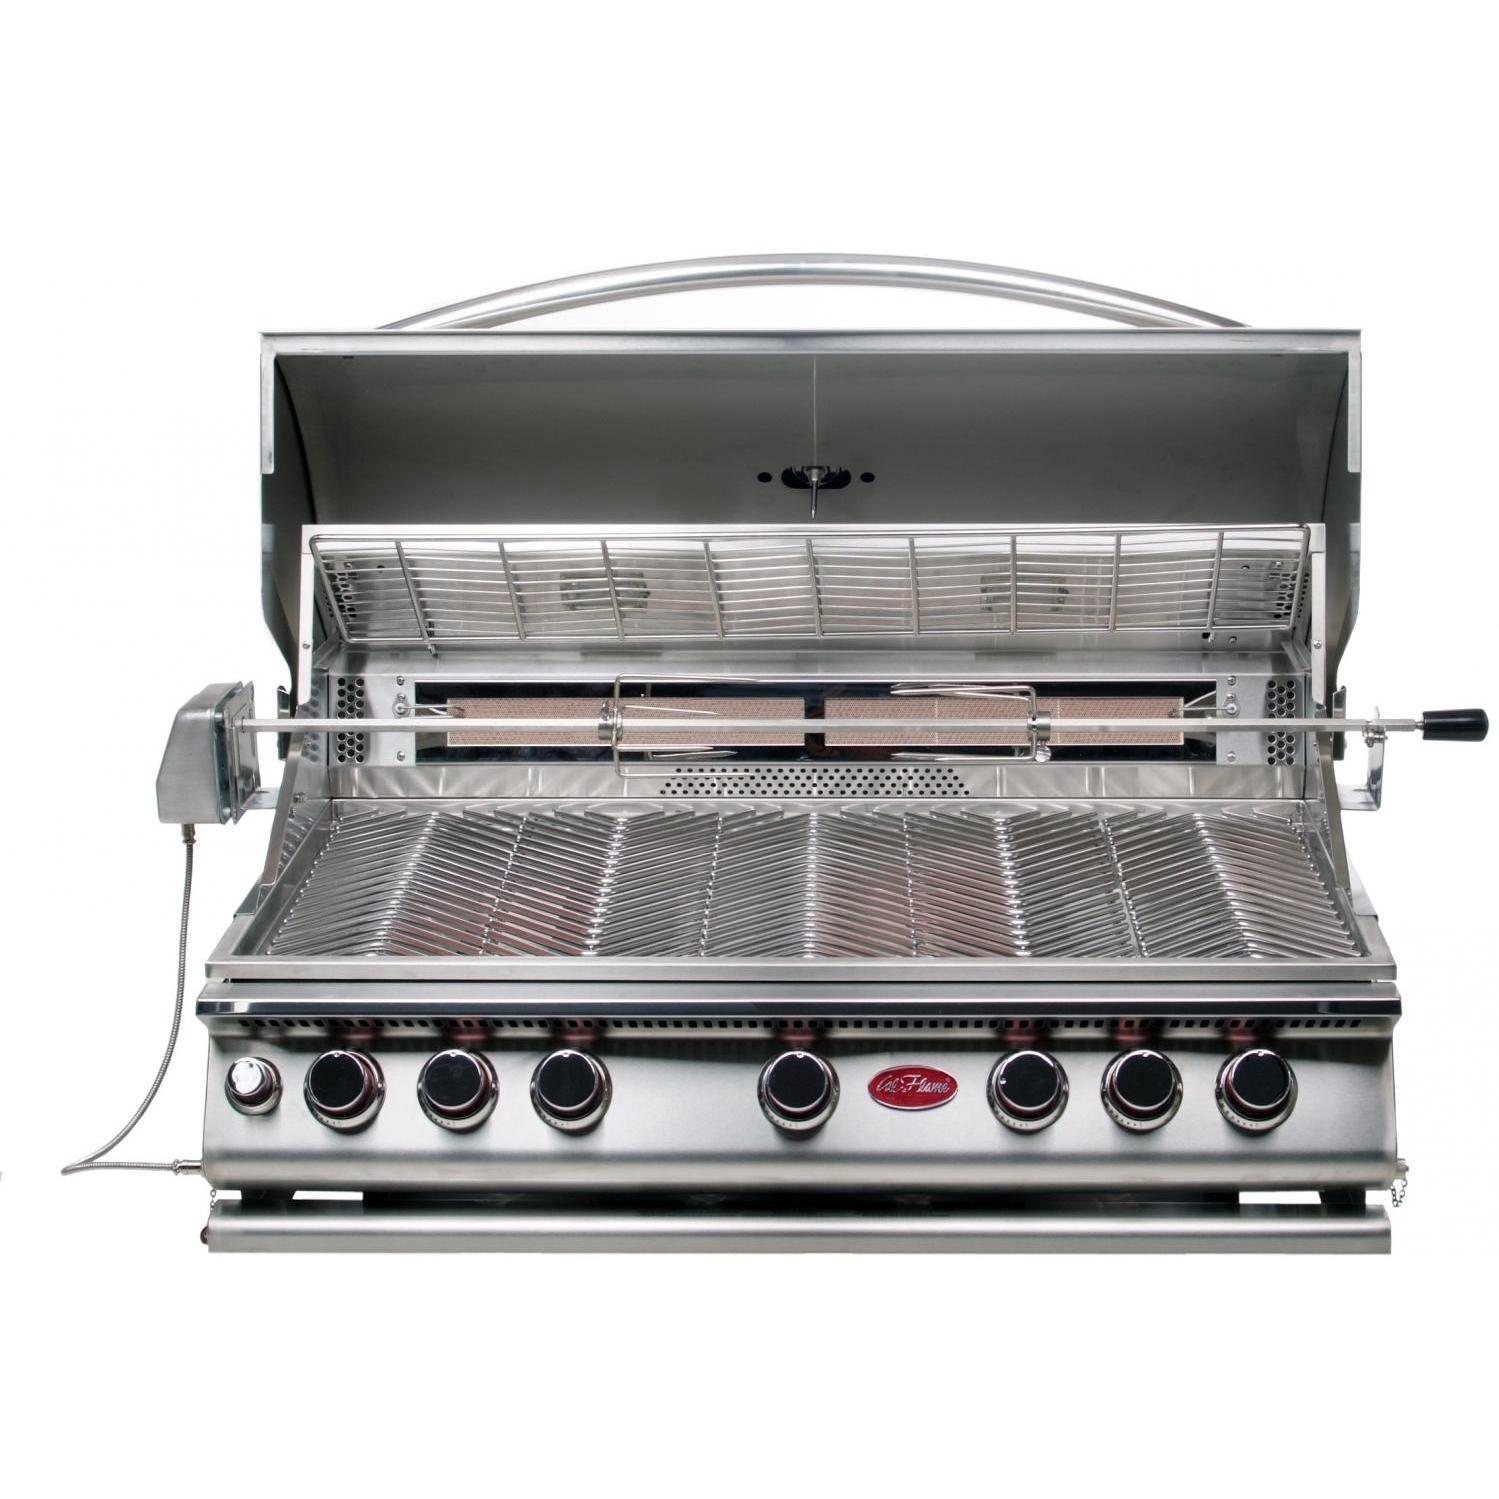 Cal Flame 40-inch 5 Burner Convection Built-in Propane Gas Grill With Rotisserie at Sears.com